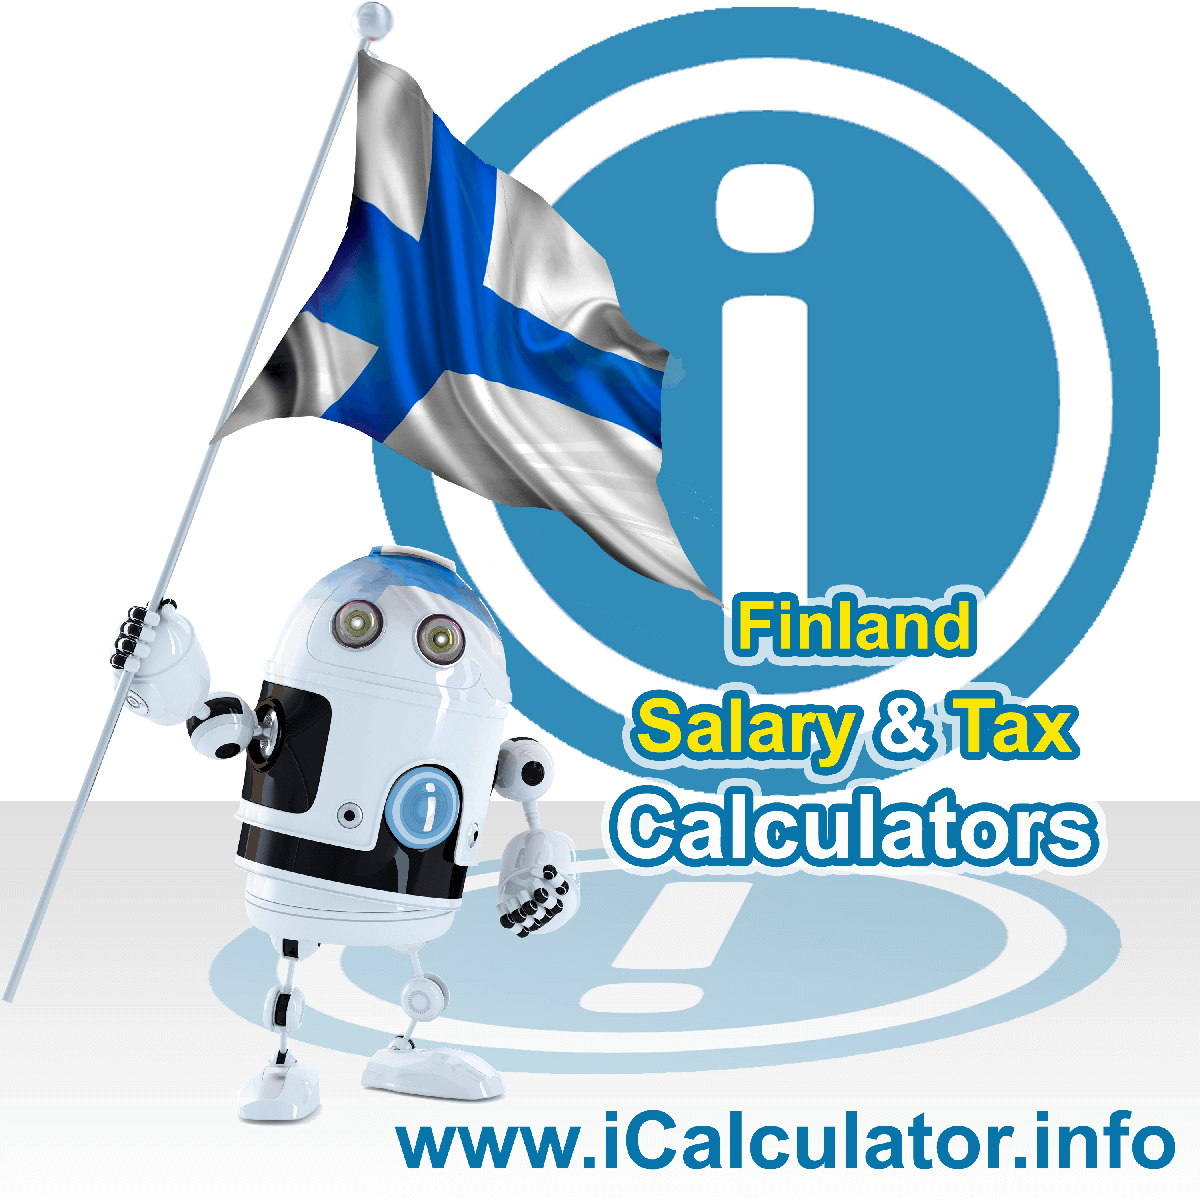 Finland Wage Calculator. This image shows the Finland flag and information relating to the tax formula for the Finland Tax Calculator